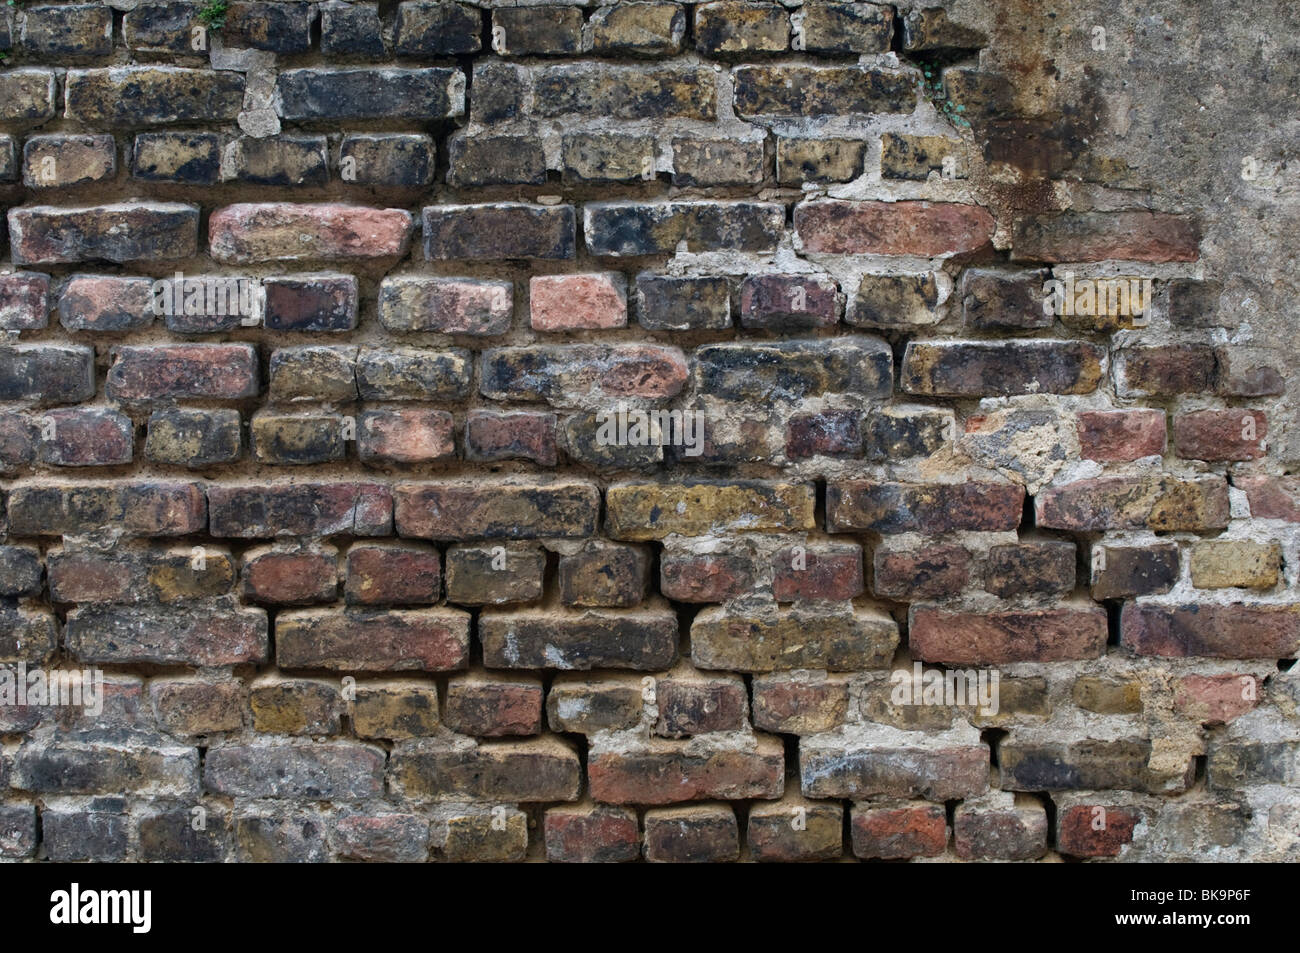 Old brick wall, with limescale runmarks, background - Stock Image